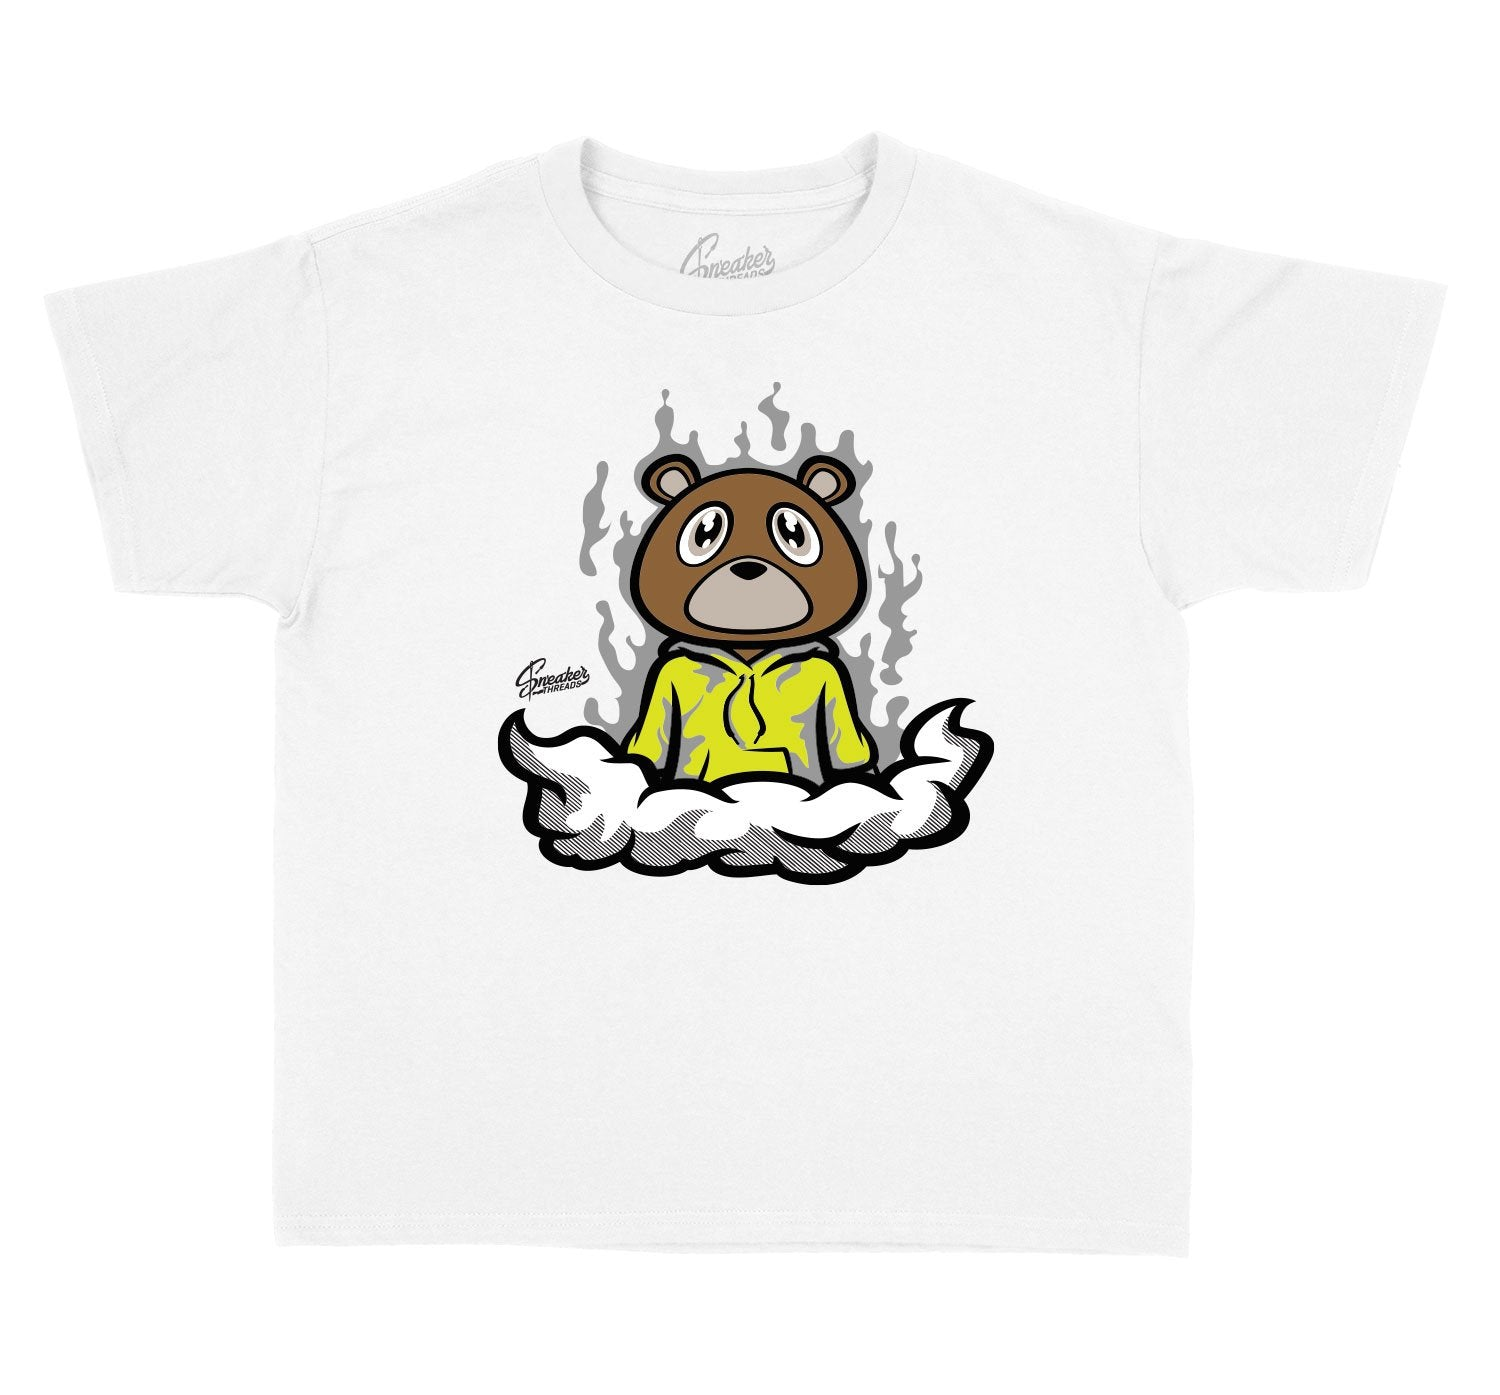 toddlers shirts made to match the yeezy yecehile sneaker collection